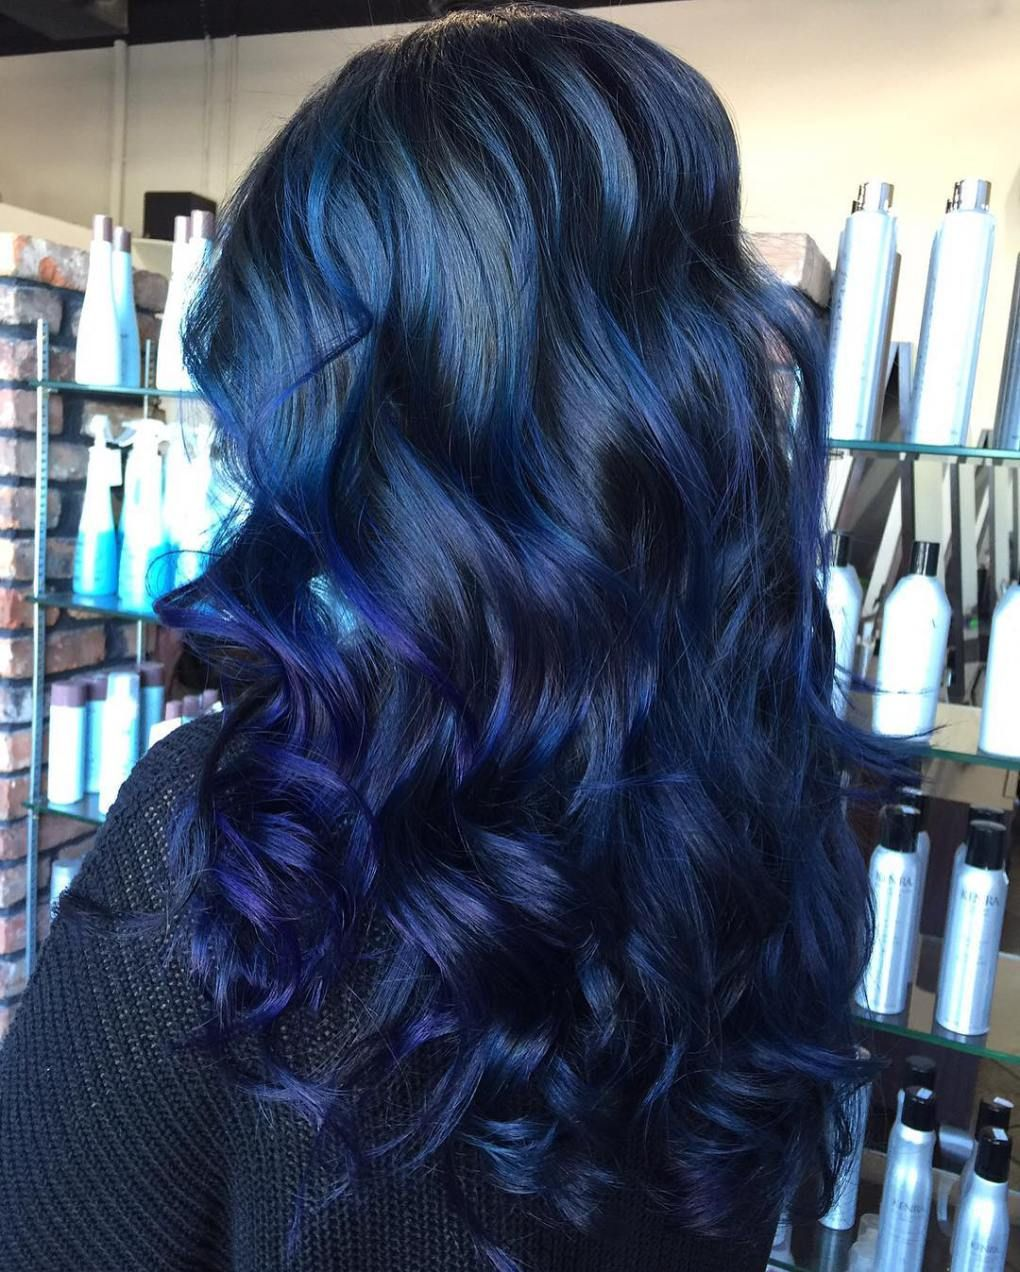 Long Black Hair With Blue Highlights Blue Hair Highlights Hair Styles Hair Color For Black Hair